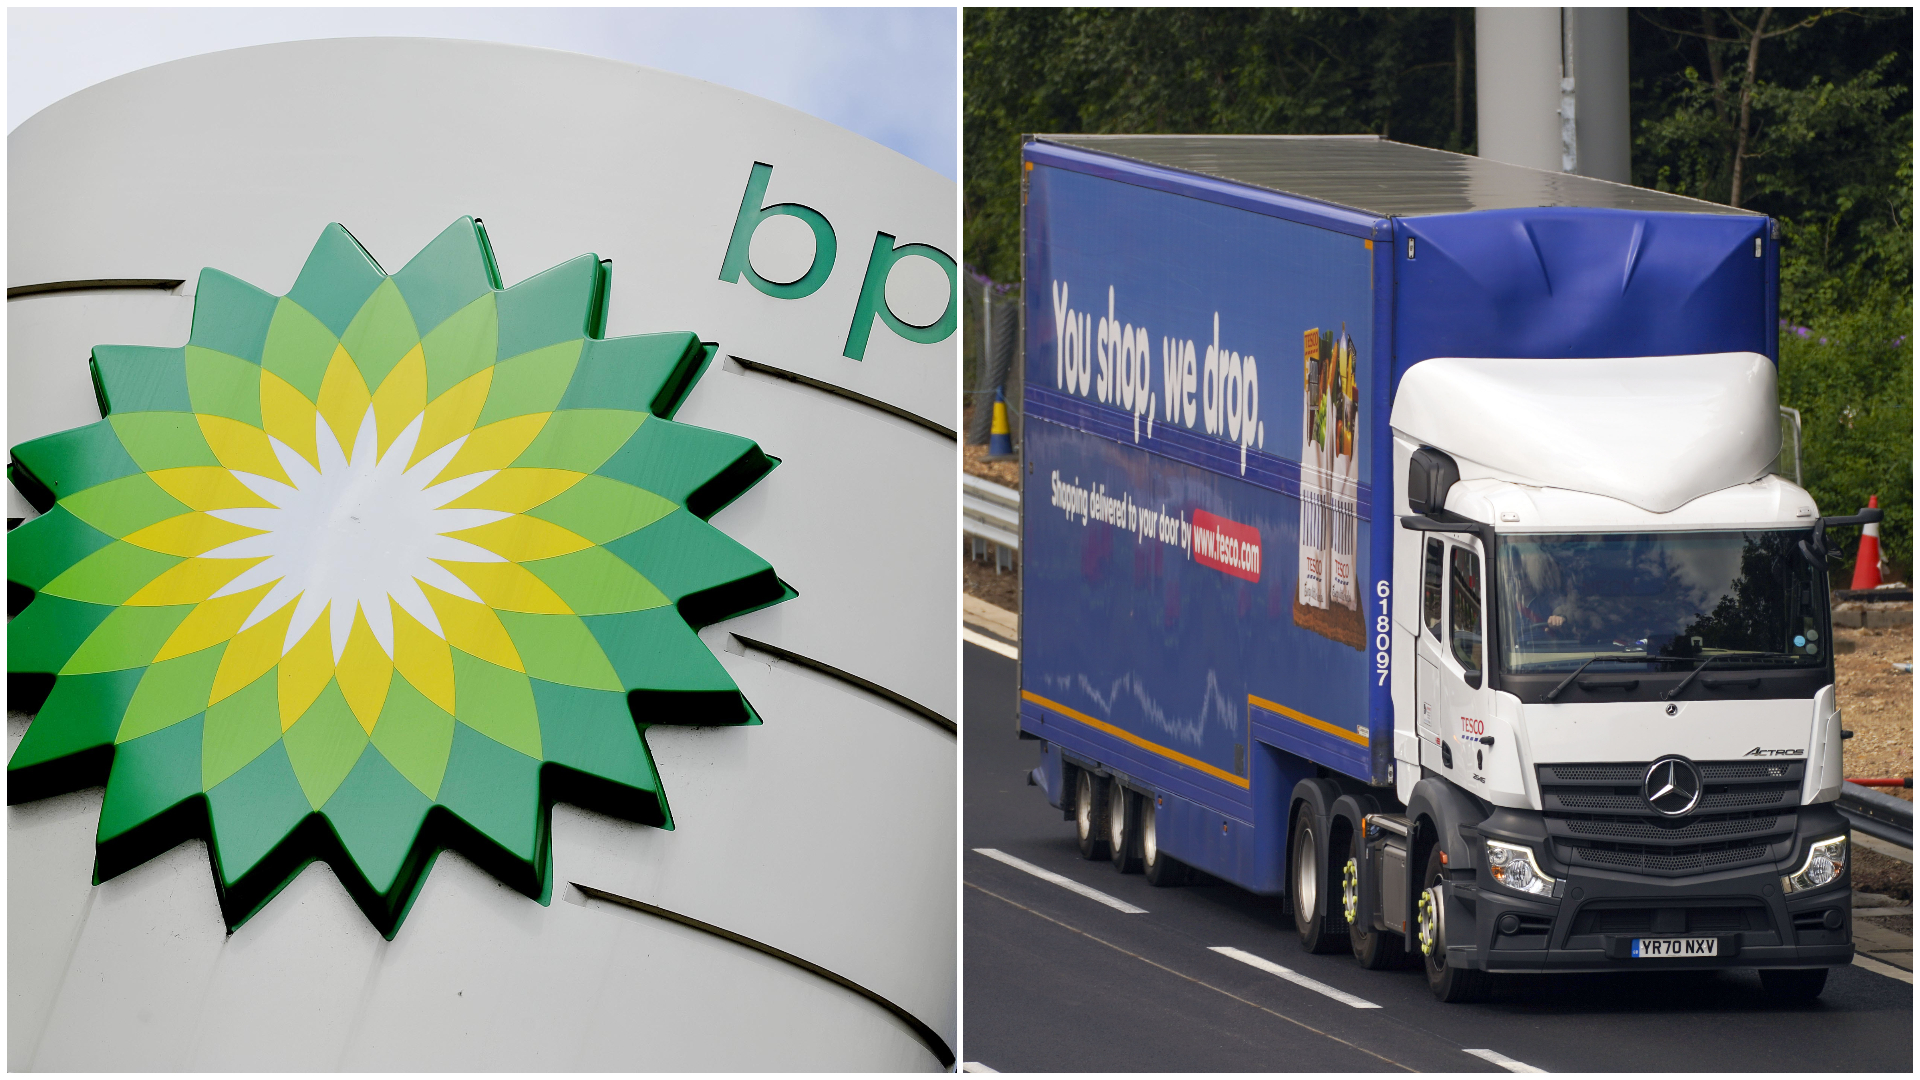 HGV driver shortage: BP poised to ration fuel deliveries amid supply problems | ITV News